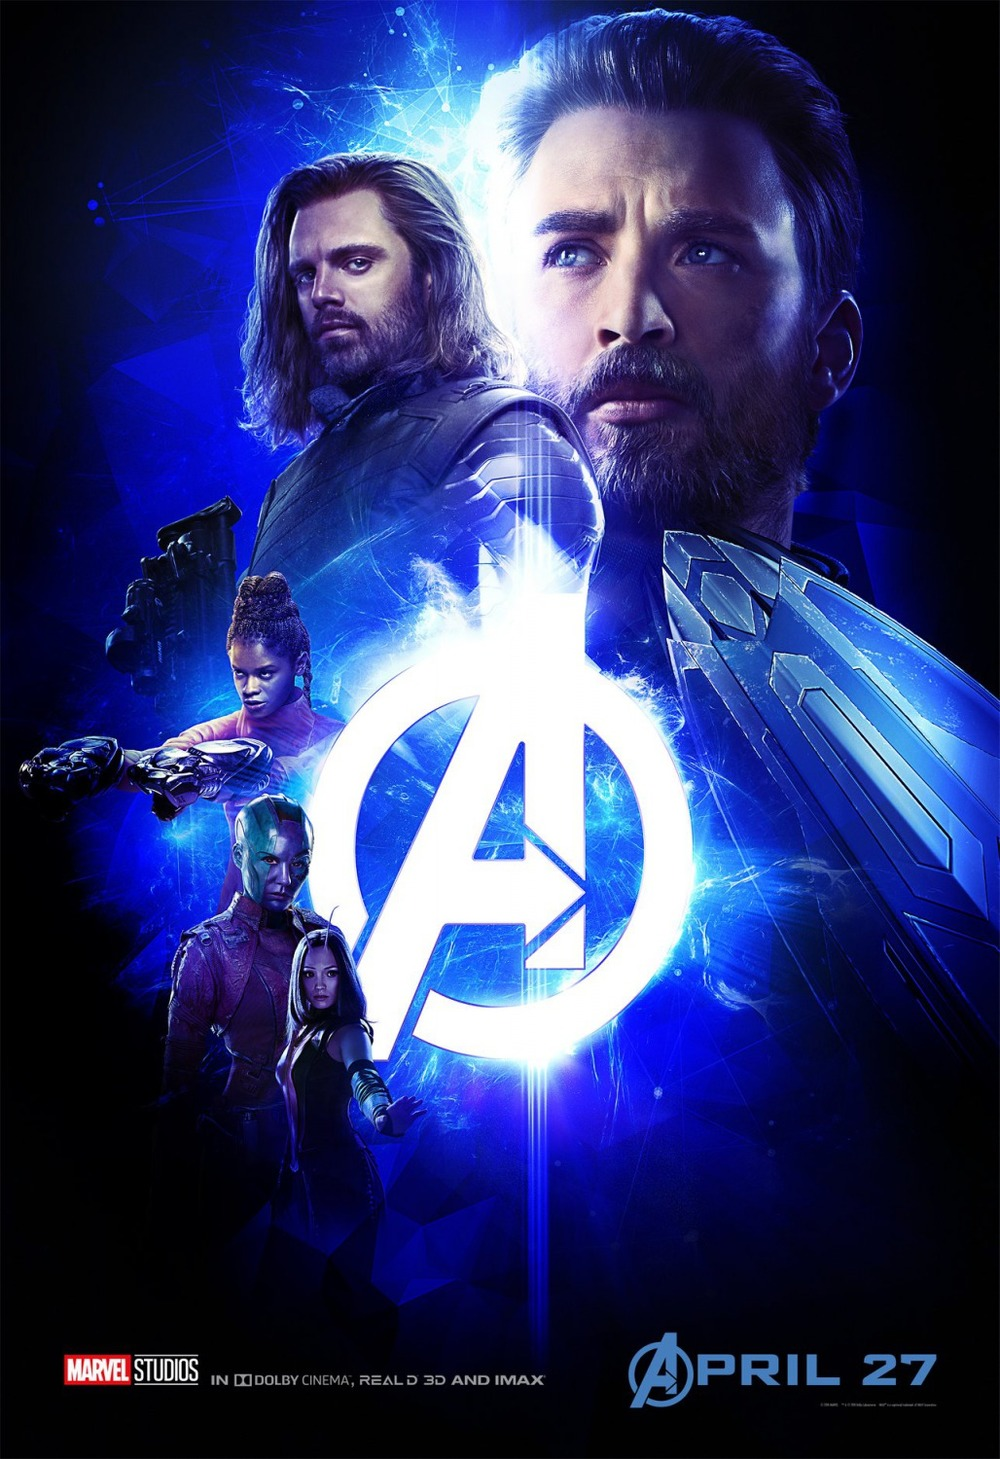 New avengers movie release date in Australia